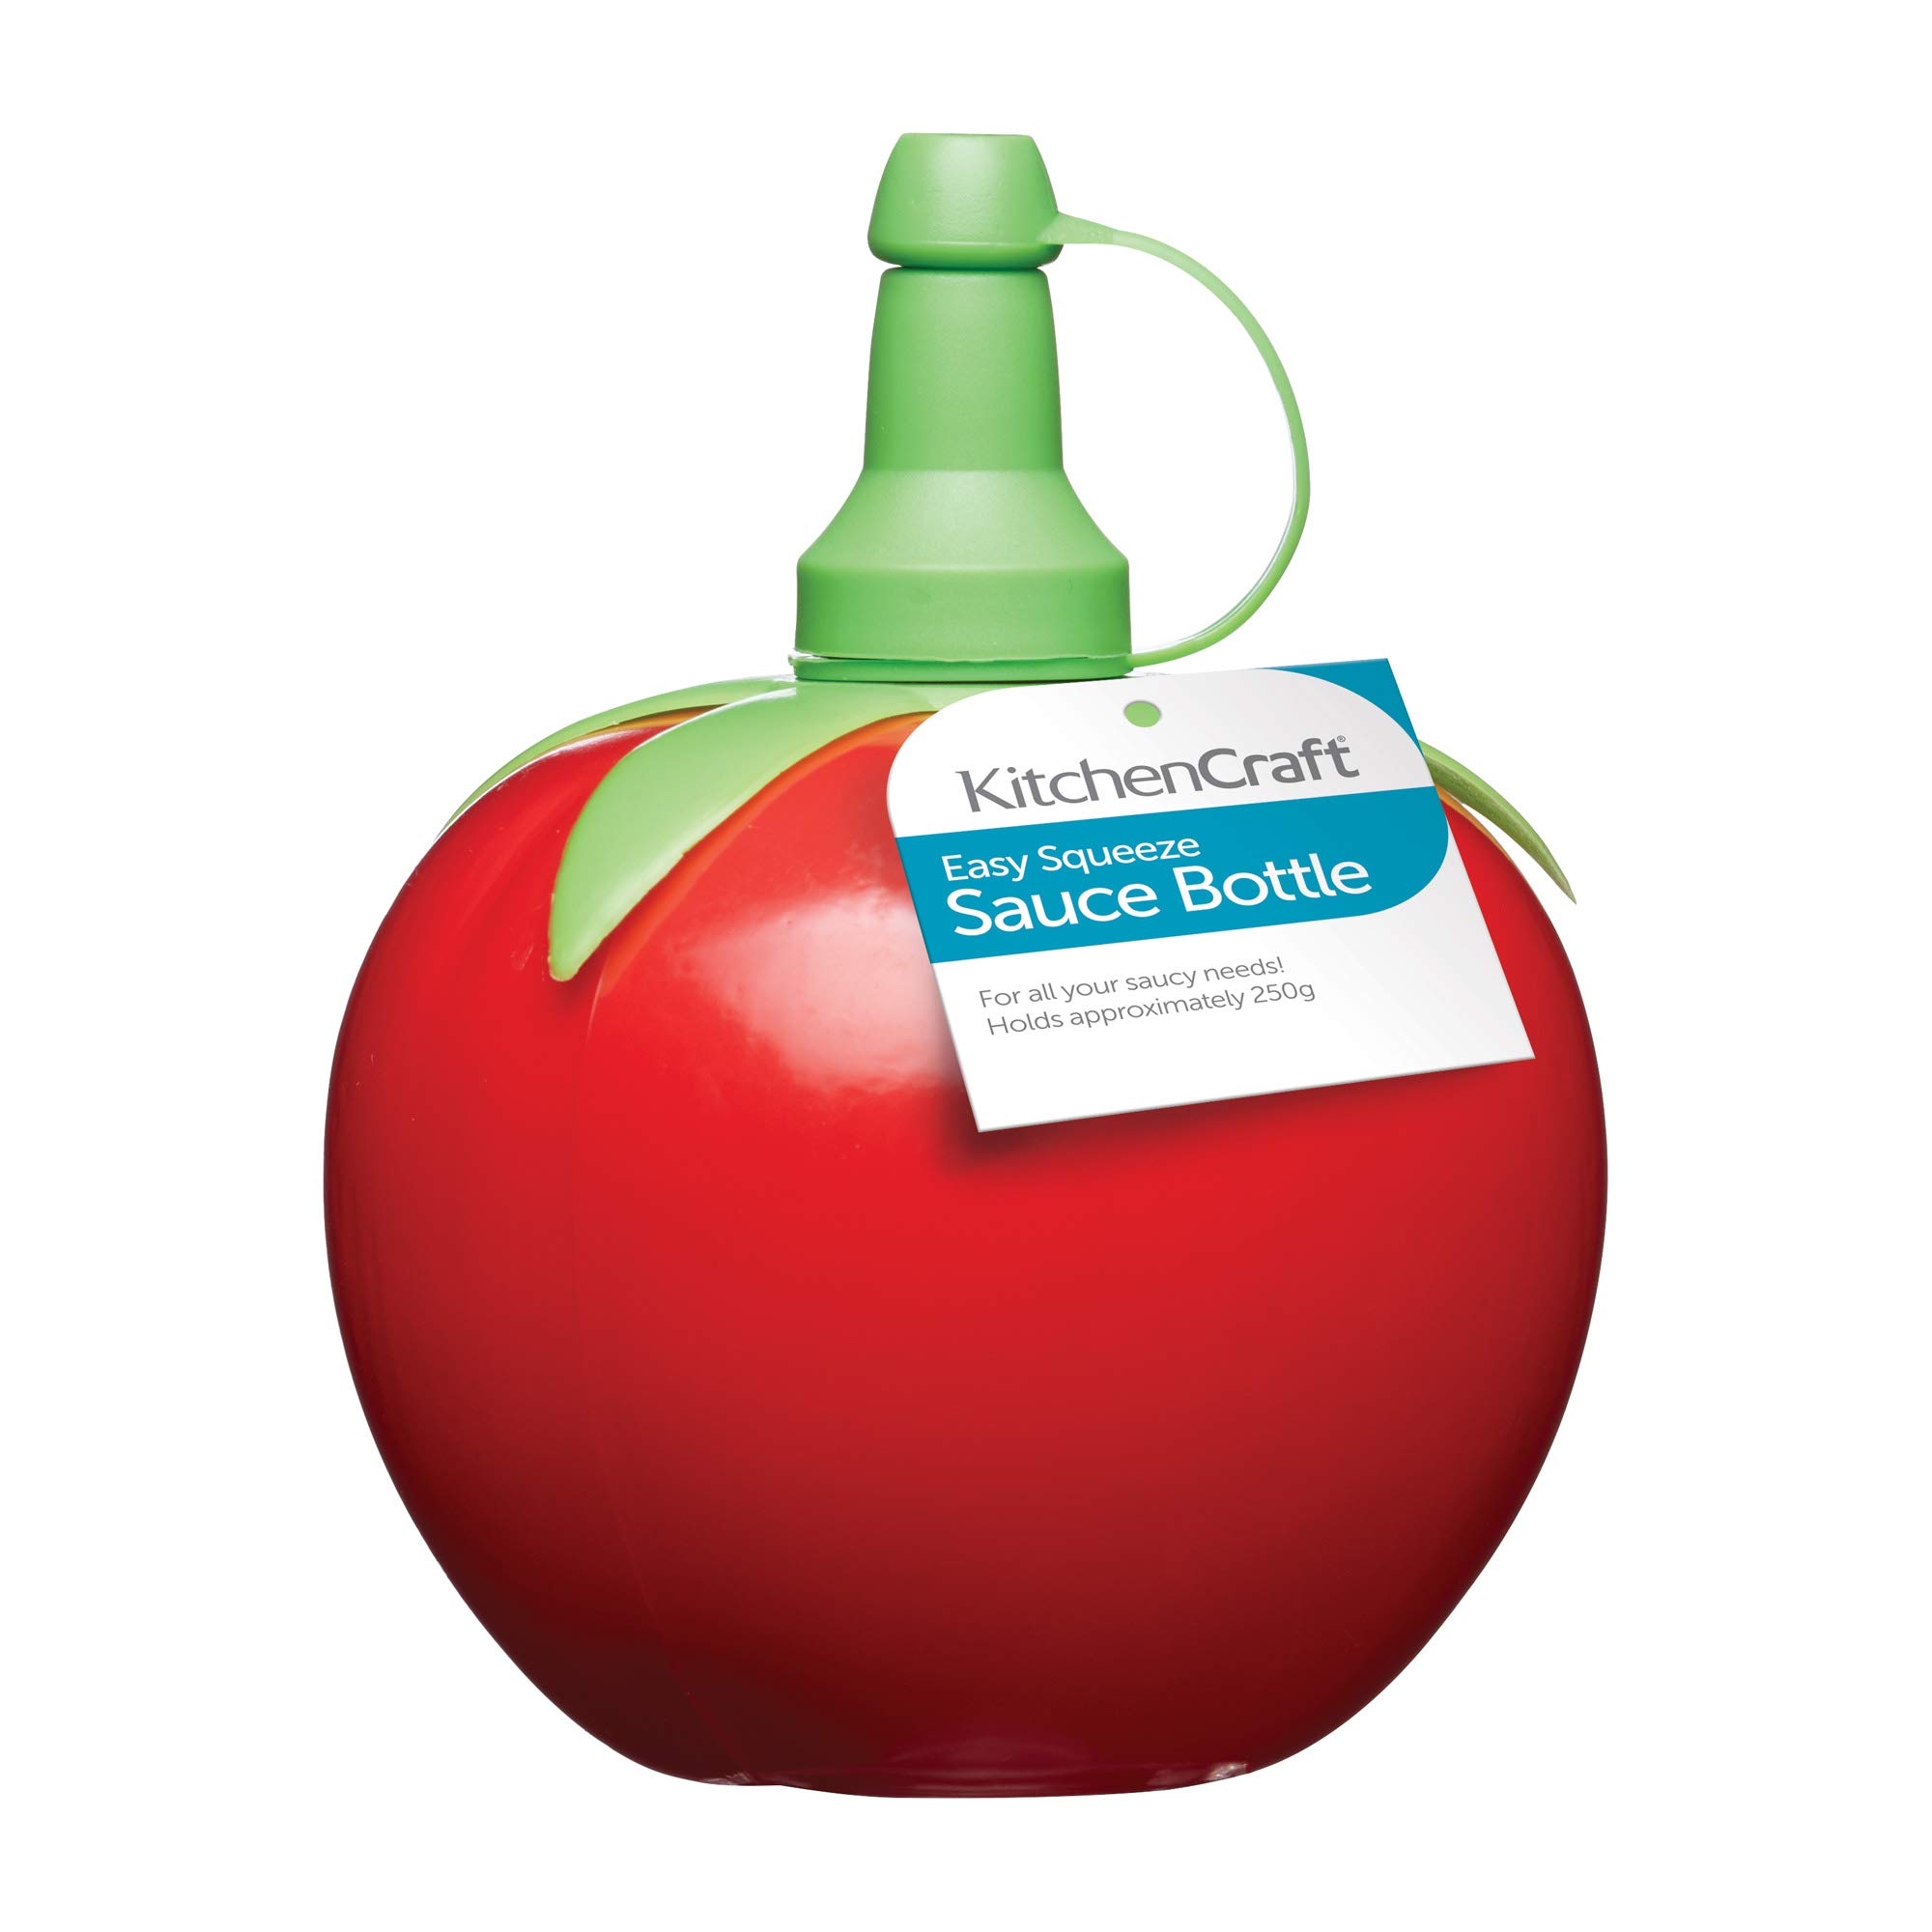 KitchenCraft Squeezy Sauce Bottle with Novelty Tomato Design, Red / Green, 250 ml